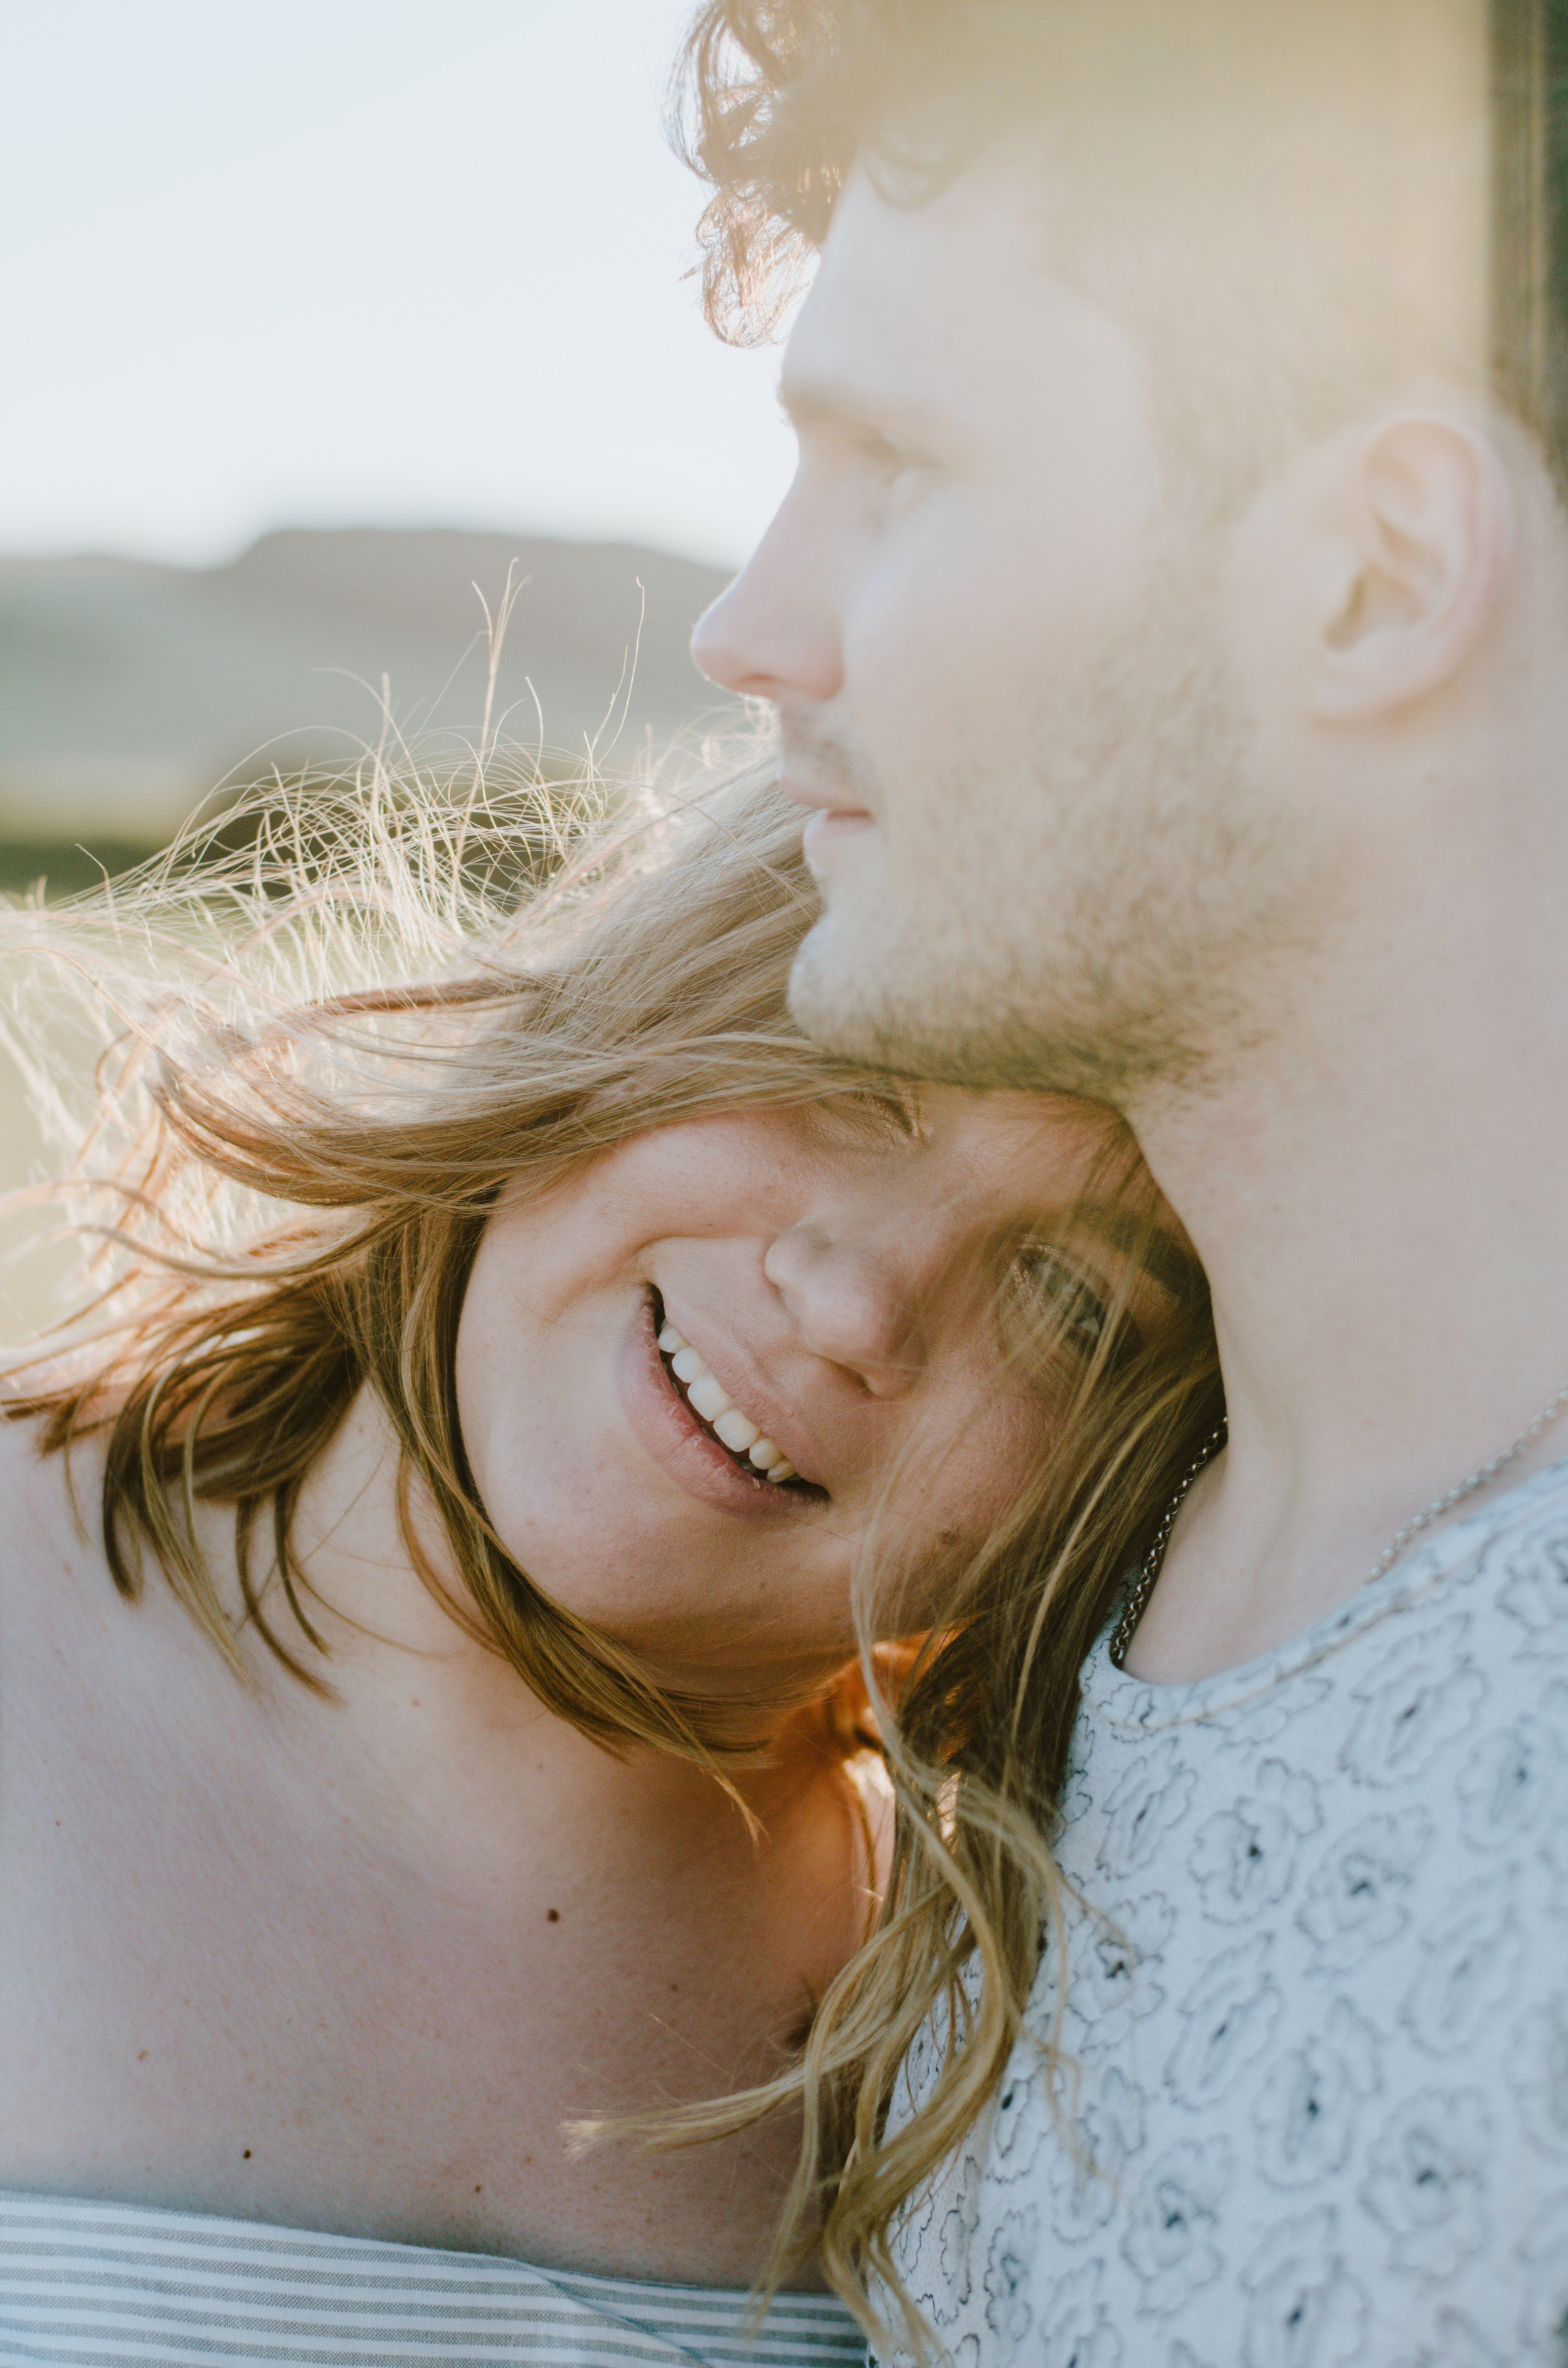 Rebecca & Dougie - Cuckmere Haven - Couple Session - Aiste Saulyte Photography-15.jpg